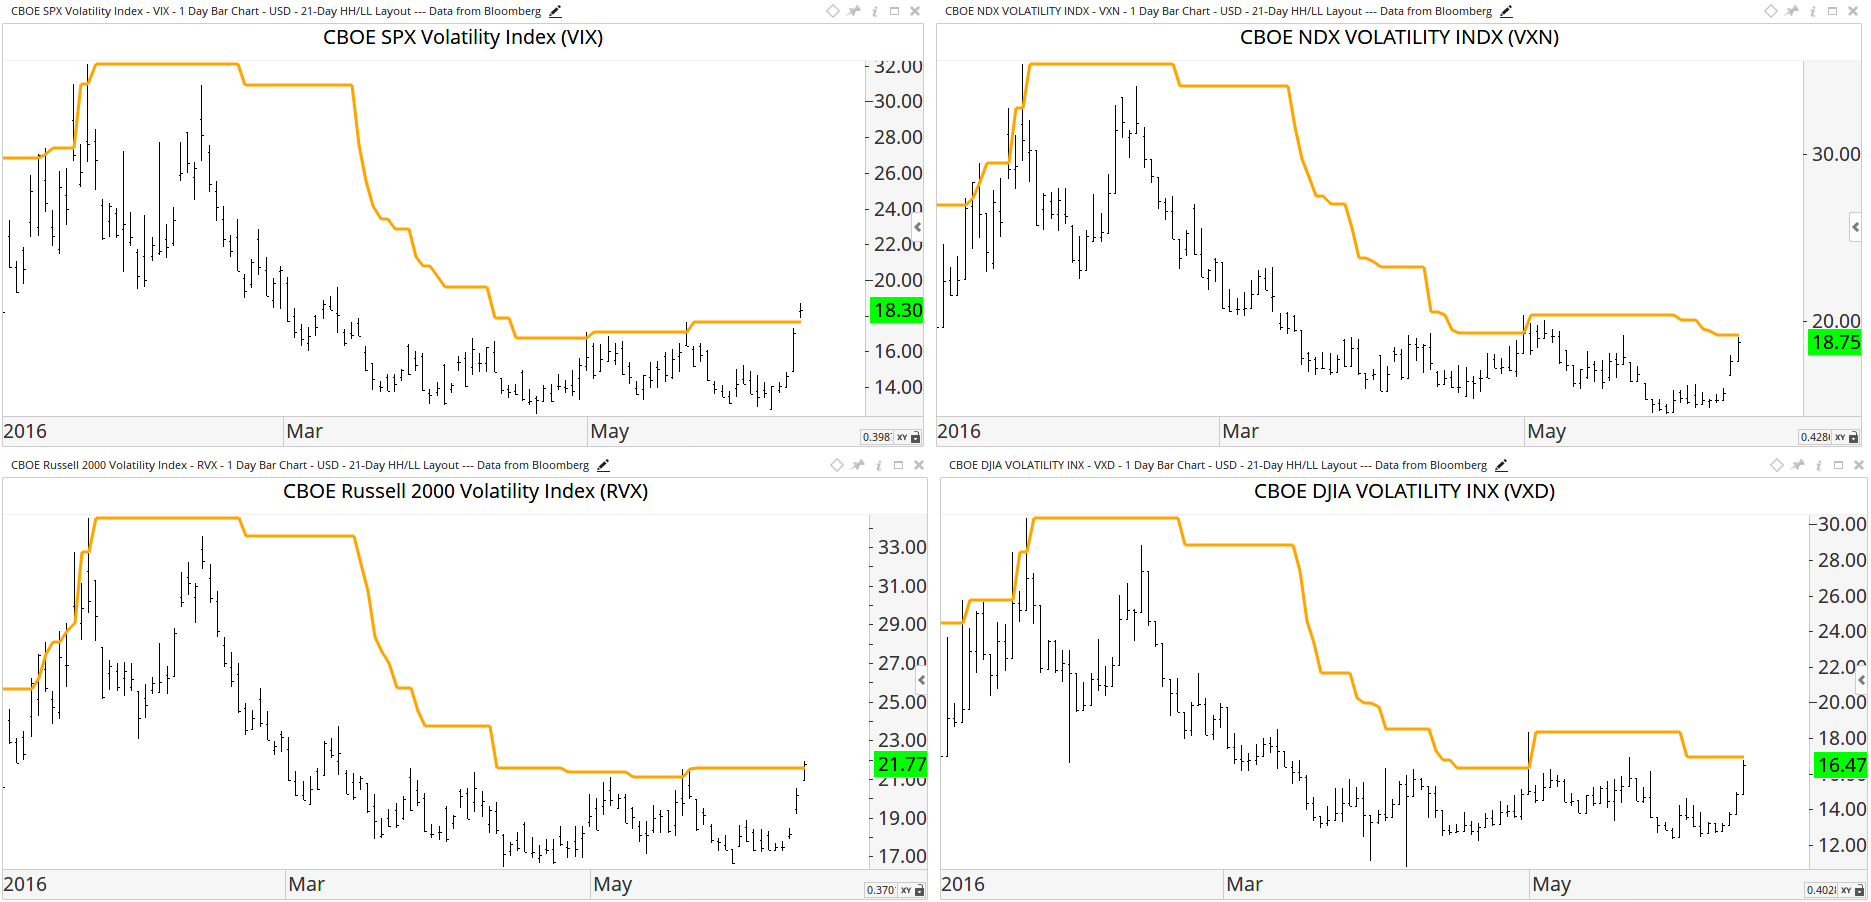 Clockwise from top-left, the Volatility Indexes $VIX (S&P500), $VXN (NASDAQ 100), $RVX (Russell 2000), and $VXD (Dow)